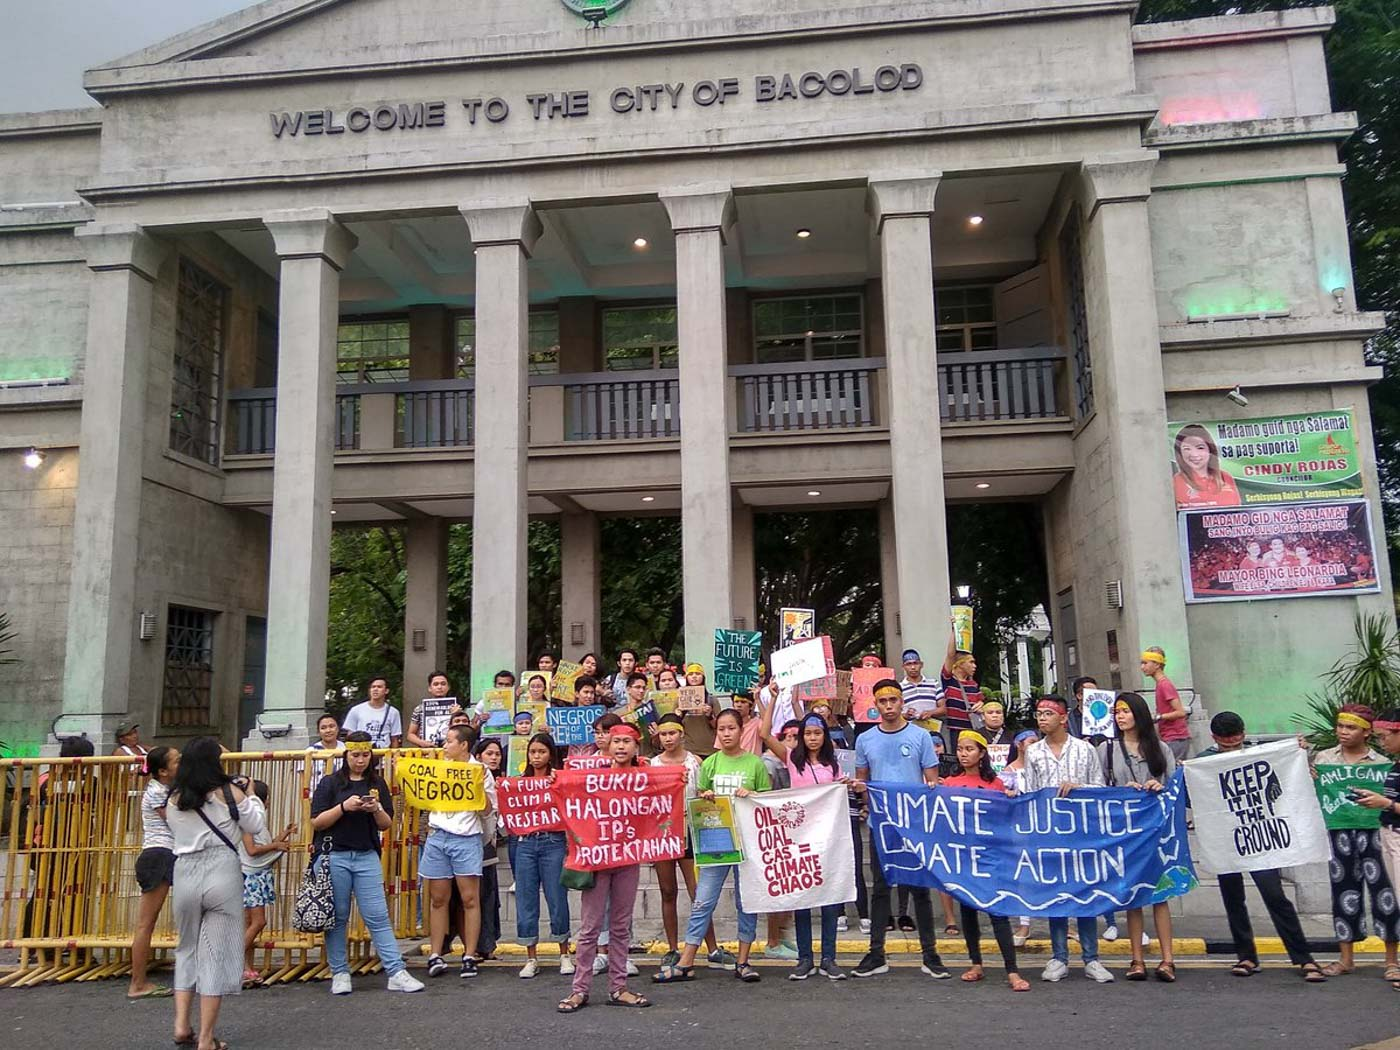 CALL FOR CLIMATE ACTION. Protesters converge at the Bacolod City public plaza. Photo by Joey Baldonado/Rappler